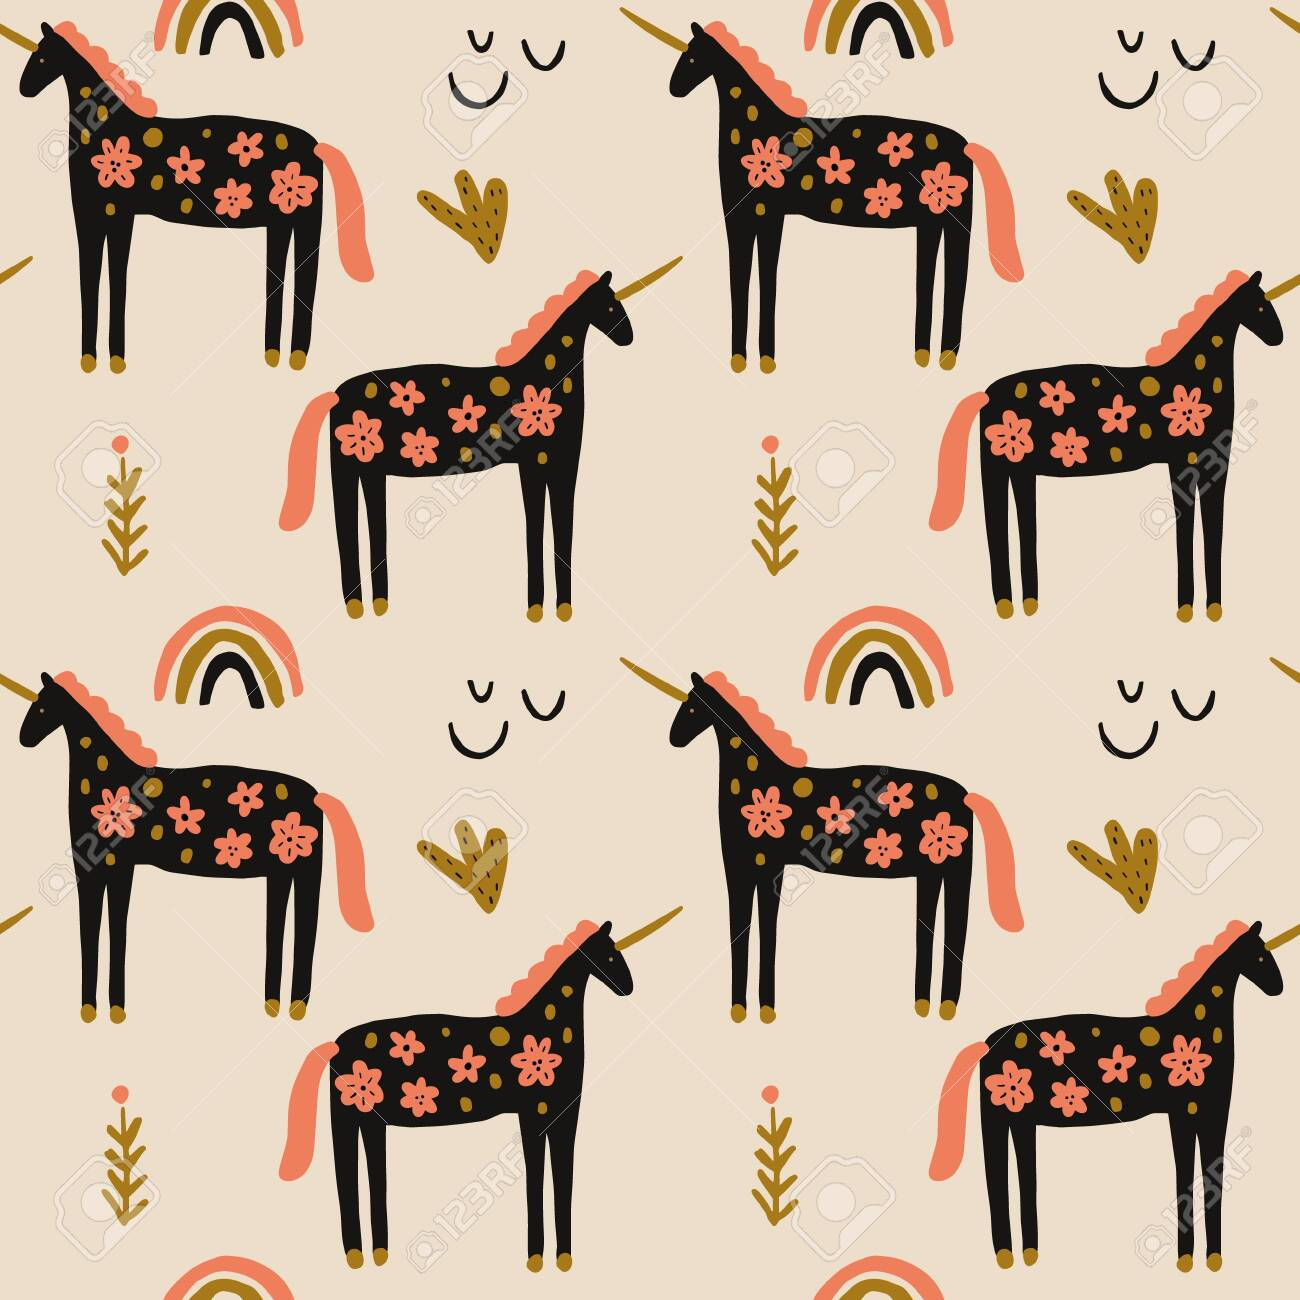 Boho Unicorn Concept Folk Art Horse Slovak Seamless Pattern Royalty Free Cliparts Vectors And Stock Illustration Image 140864105